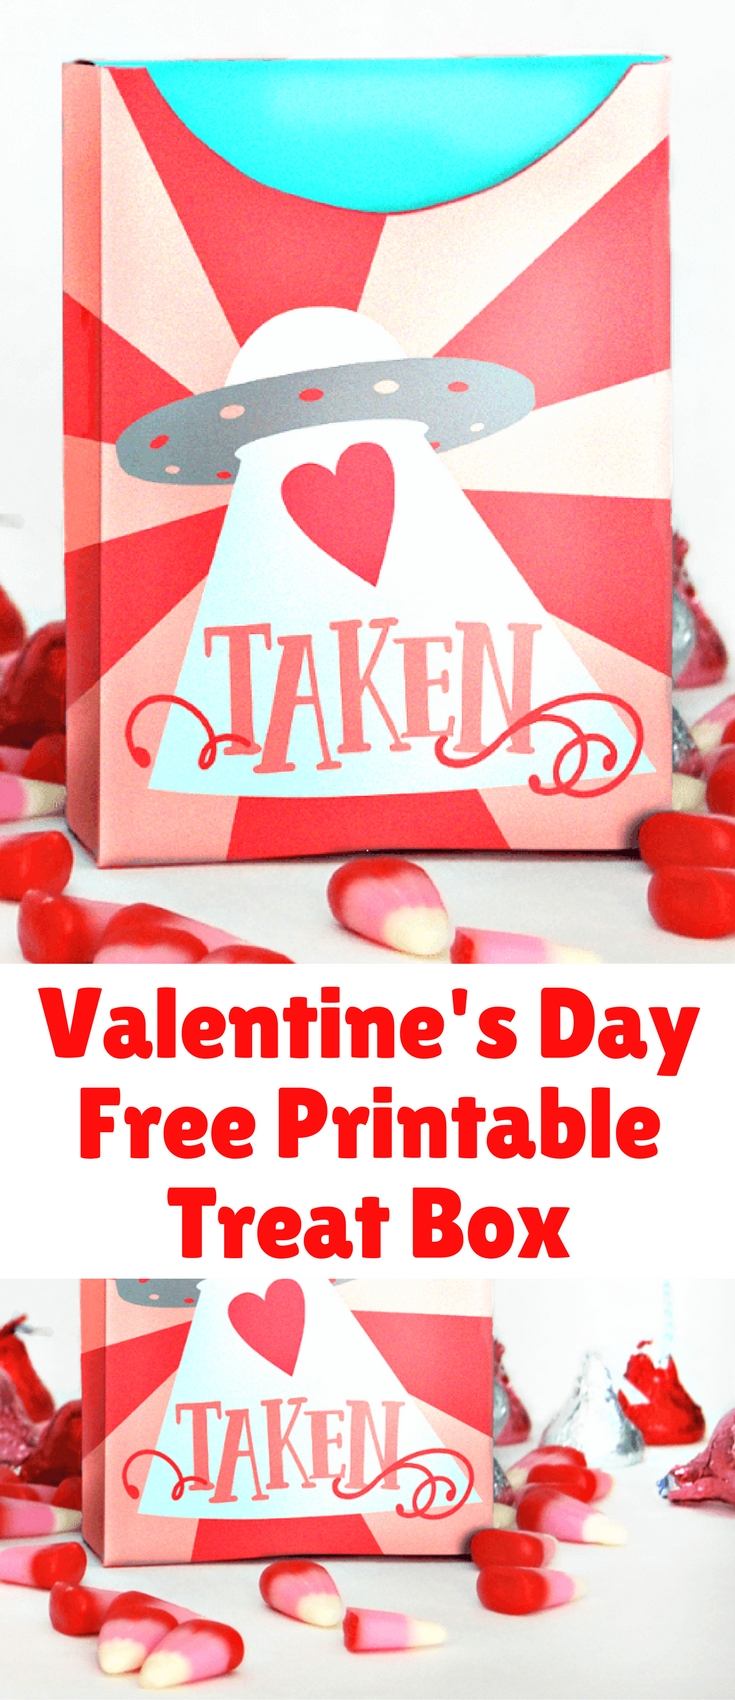 It's almost Valentine's Day! We love this adorable treat box printable and wanted to share it with you. Just print it out, fold and glue, then fill with treats. The kids will love it!